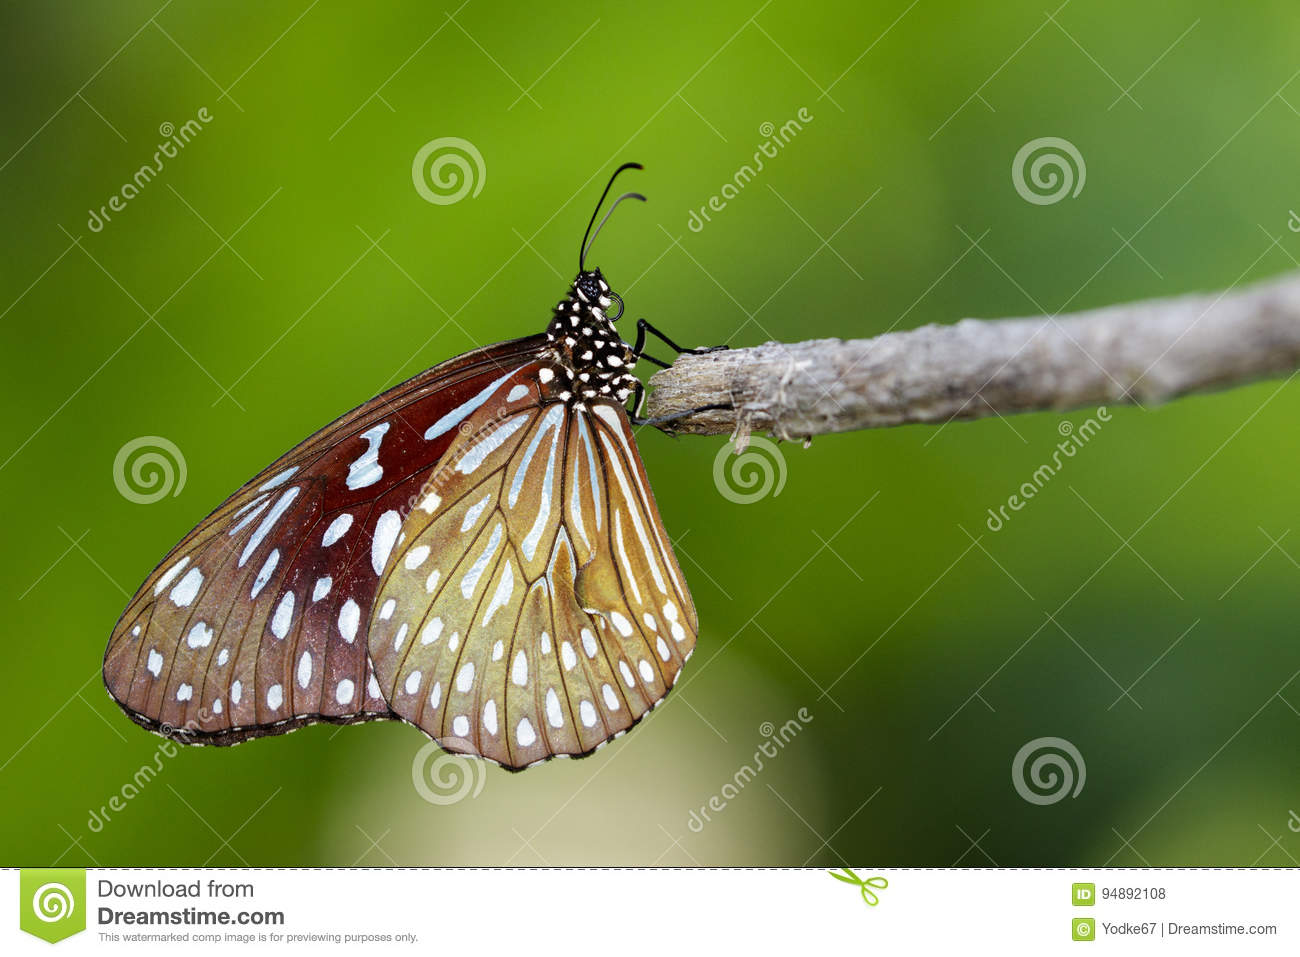 Image of a butterfly The Pale Blue Tiger on nature background.